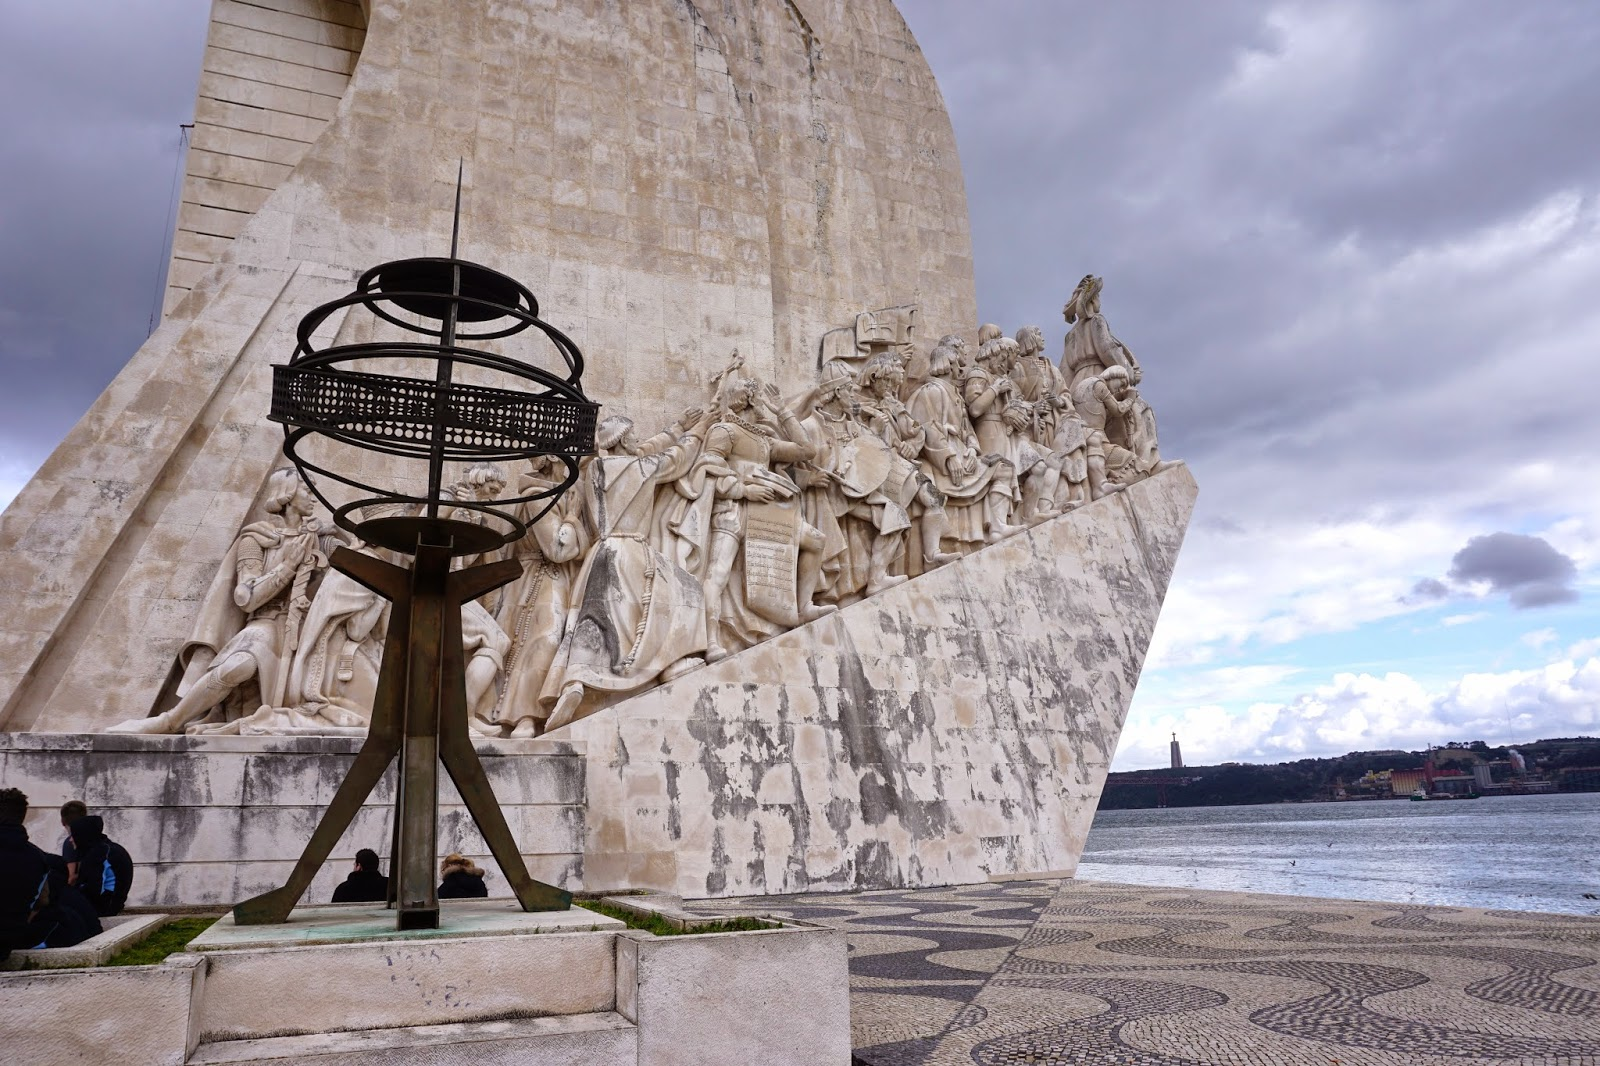 Padrado dos Descobrimentos, Monument to the Discoveries in Lisbon